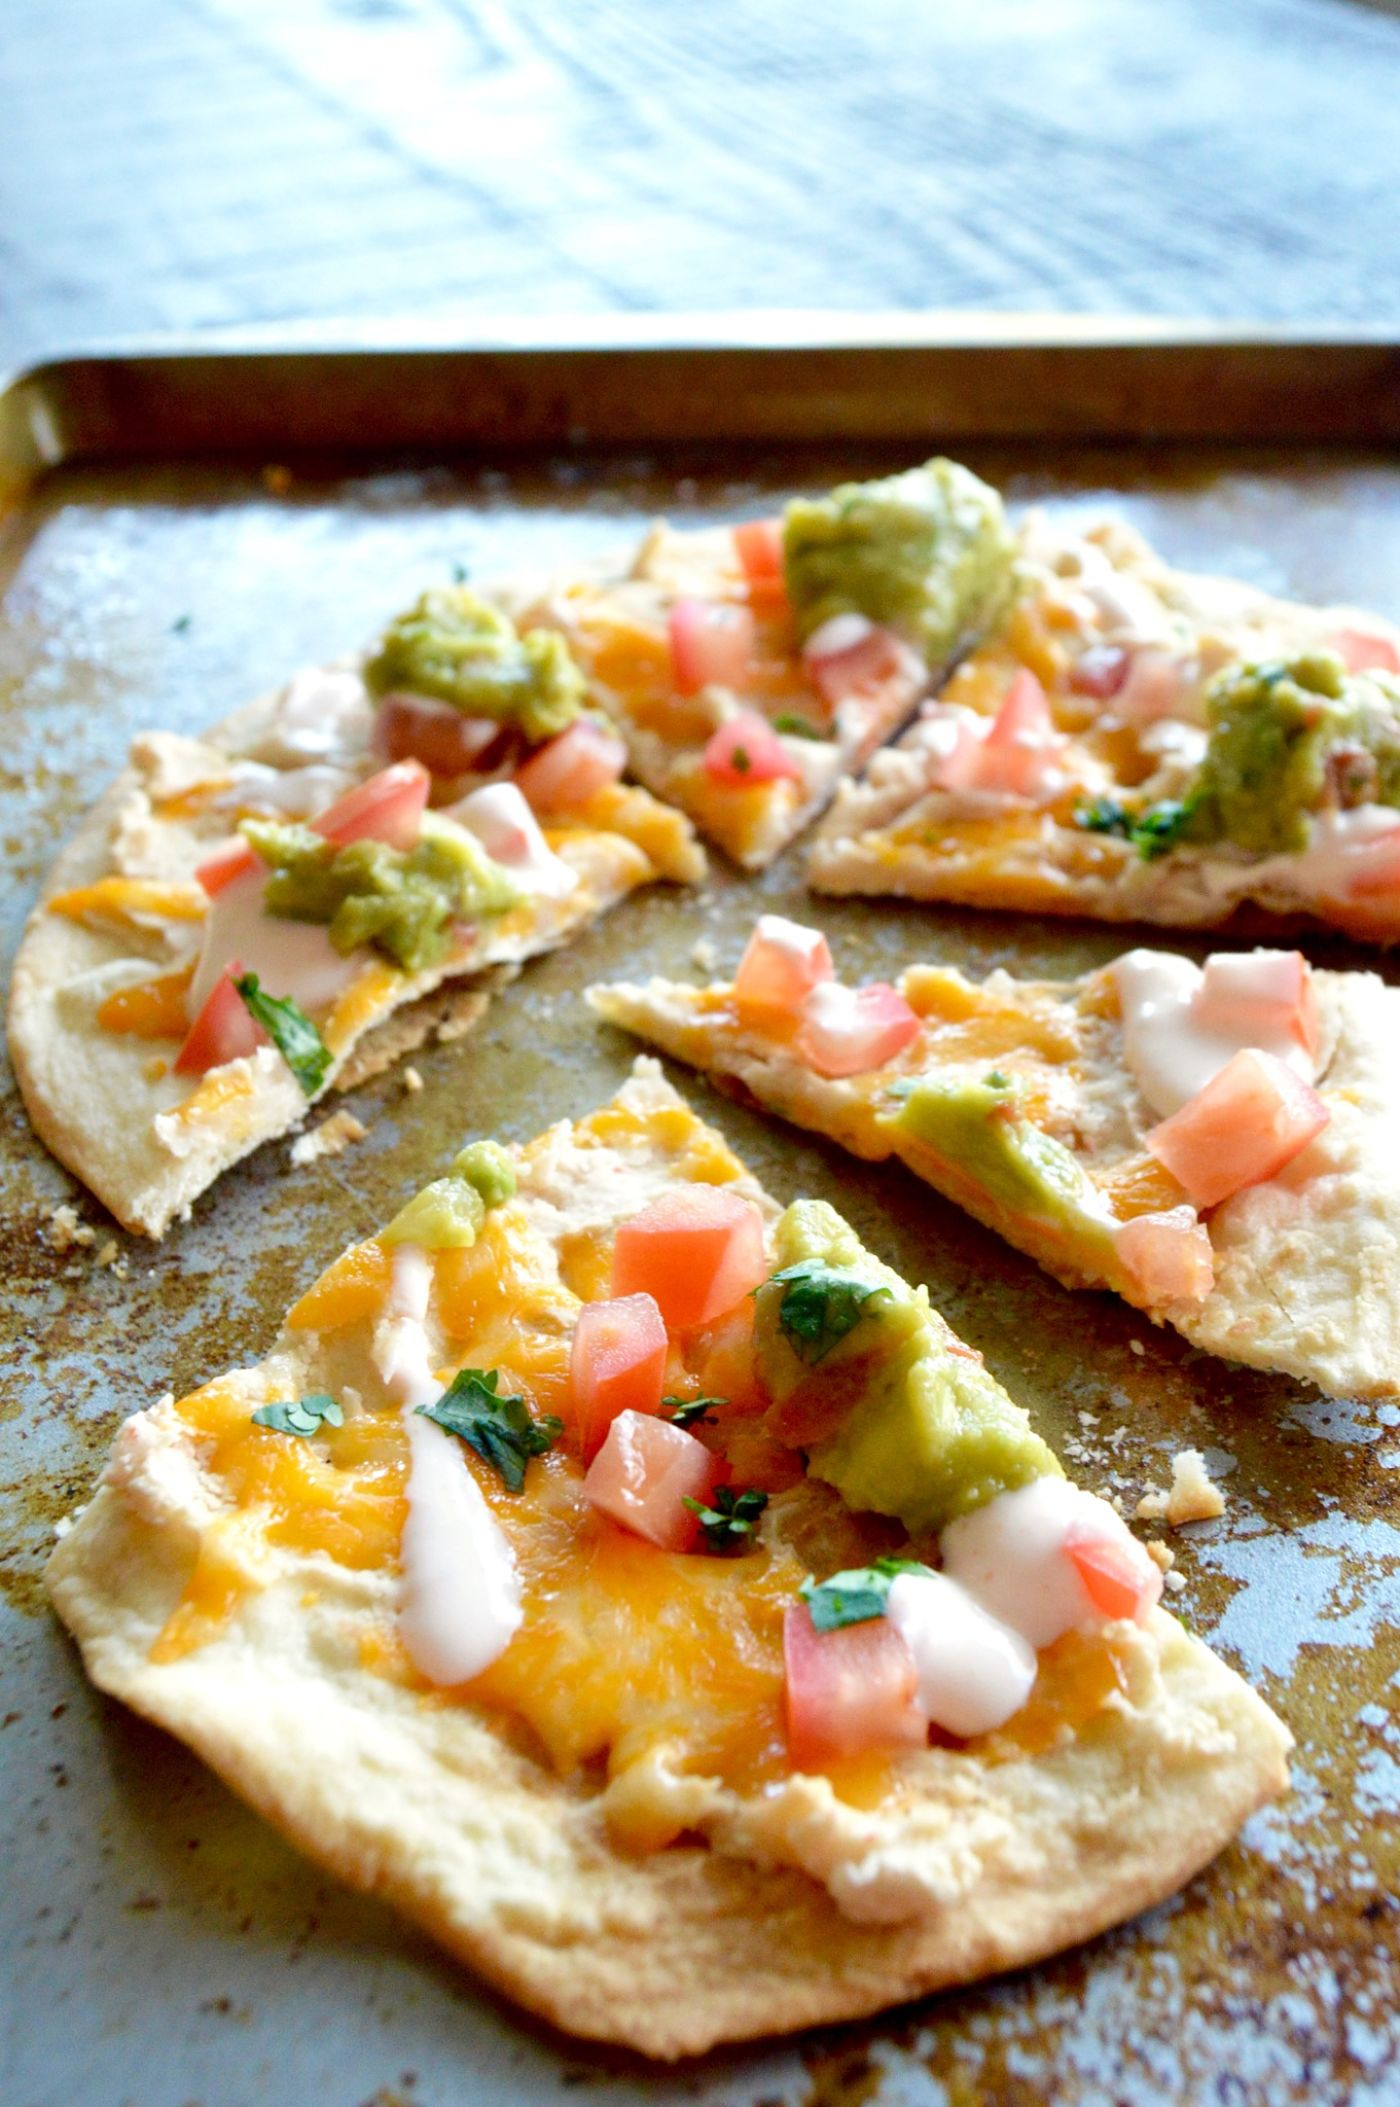 Healthy Tortilla White Bean Pizza is a great option for a lighter appetizer to have for a get together during the busy holiday season. Your guests will love all the flavors and appreciate that its a lighter option with all the heavy foods that happen during the season.